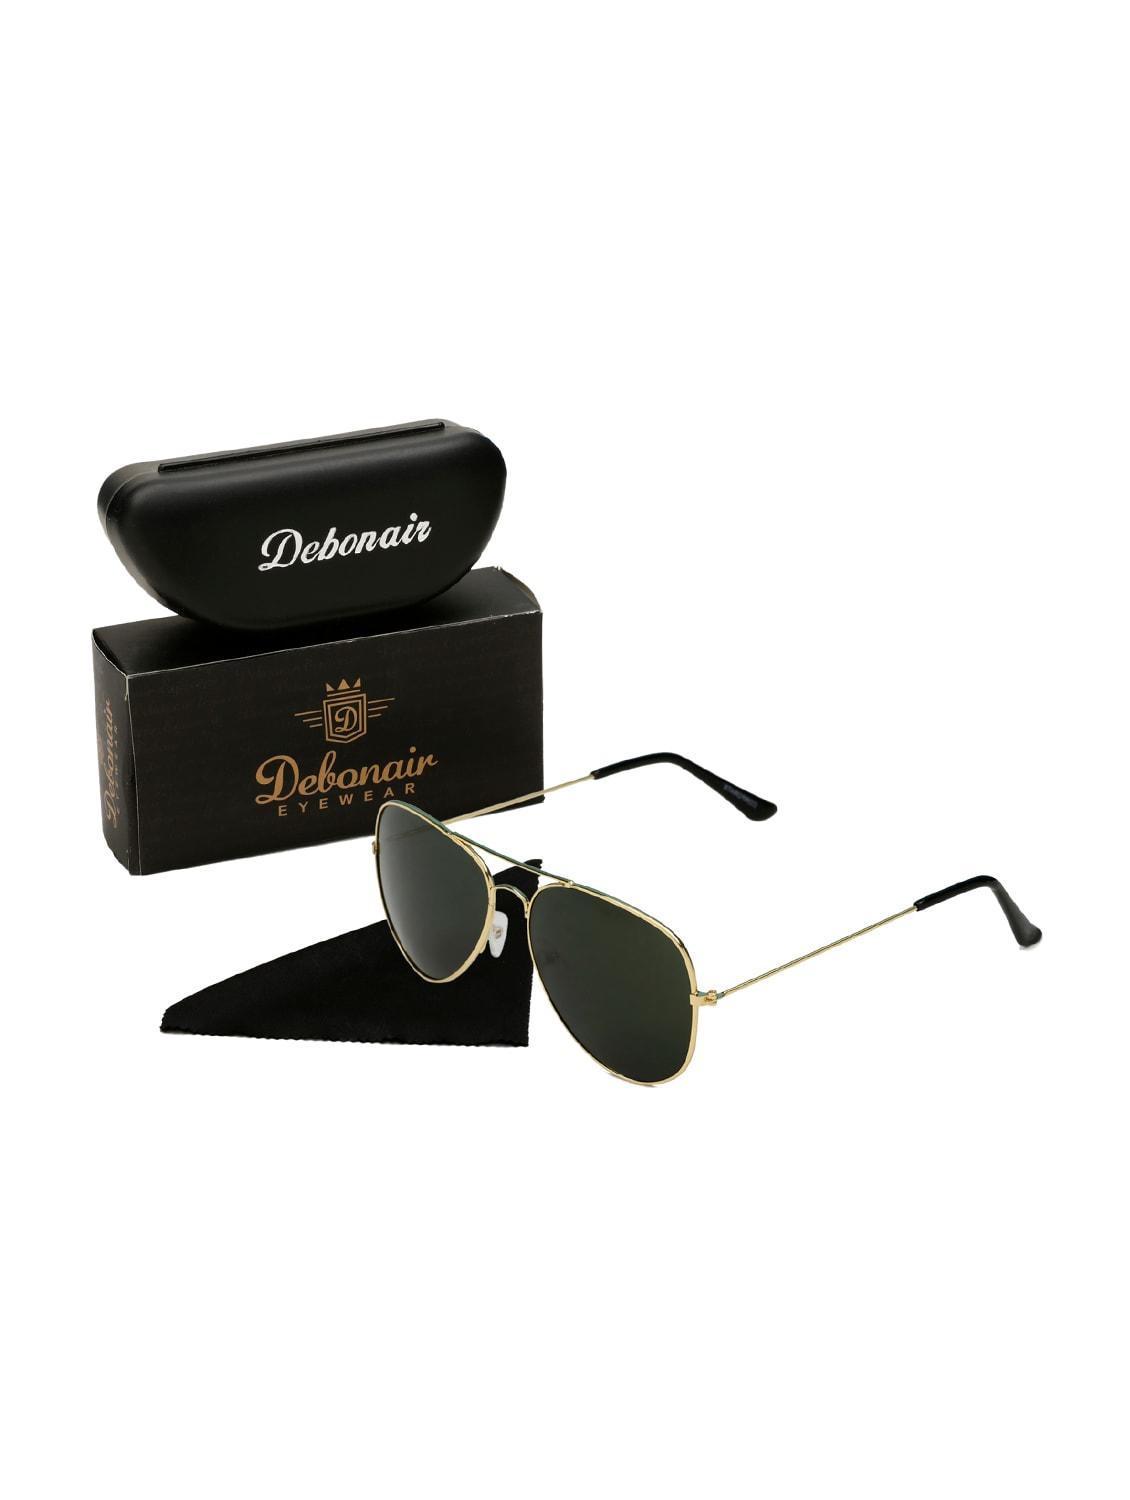 b3a8c692be7 Buy Uv Protected Aviator Sunglasses by Debonair - Online shopping ...